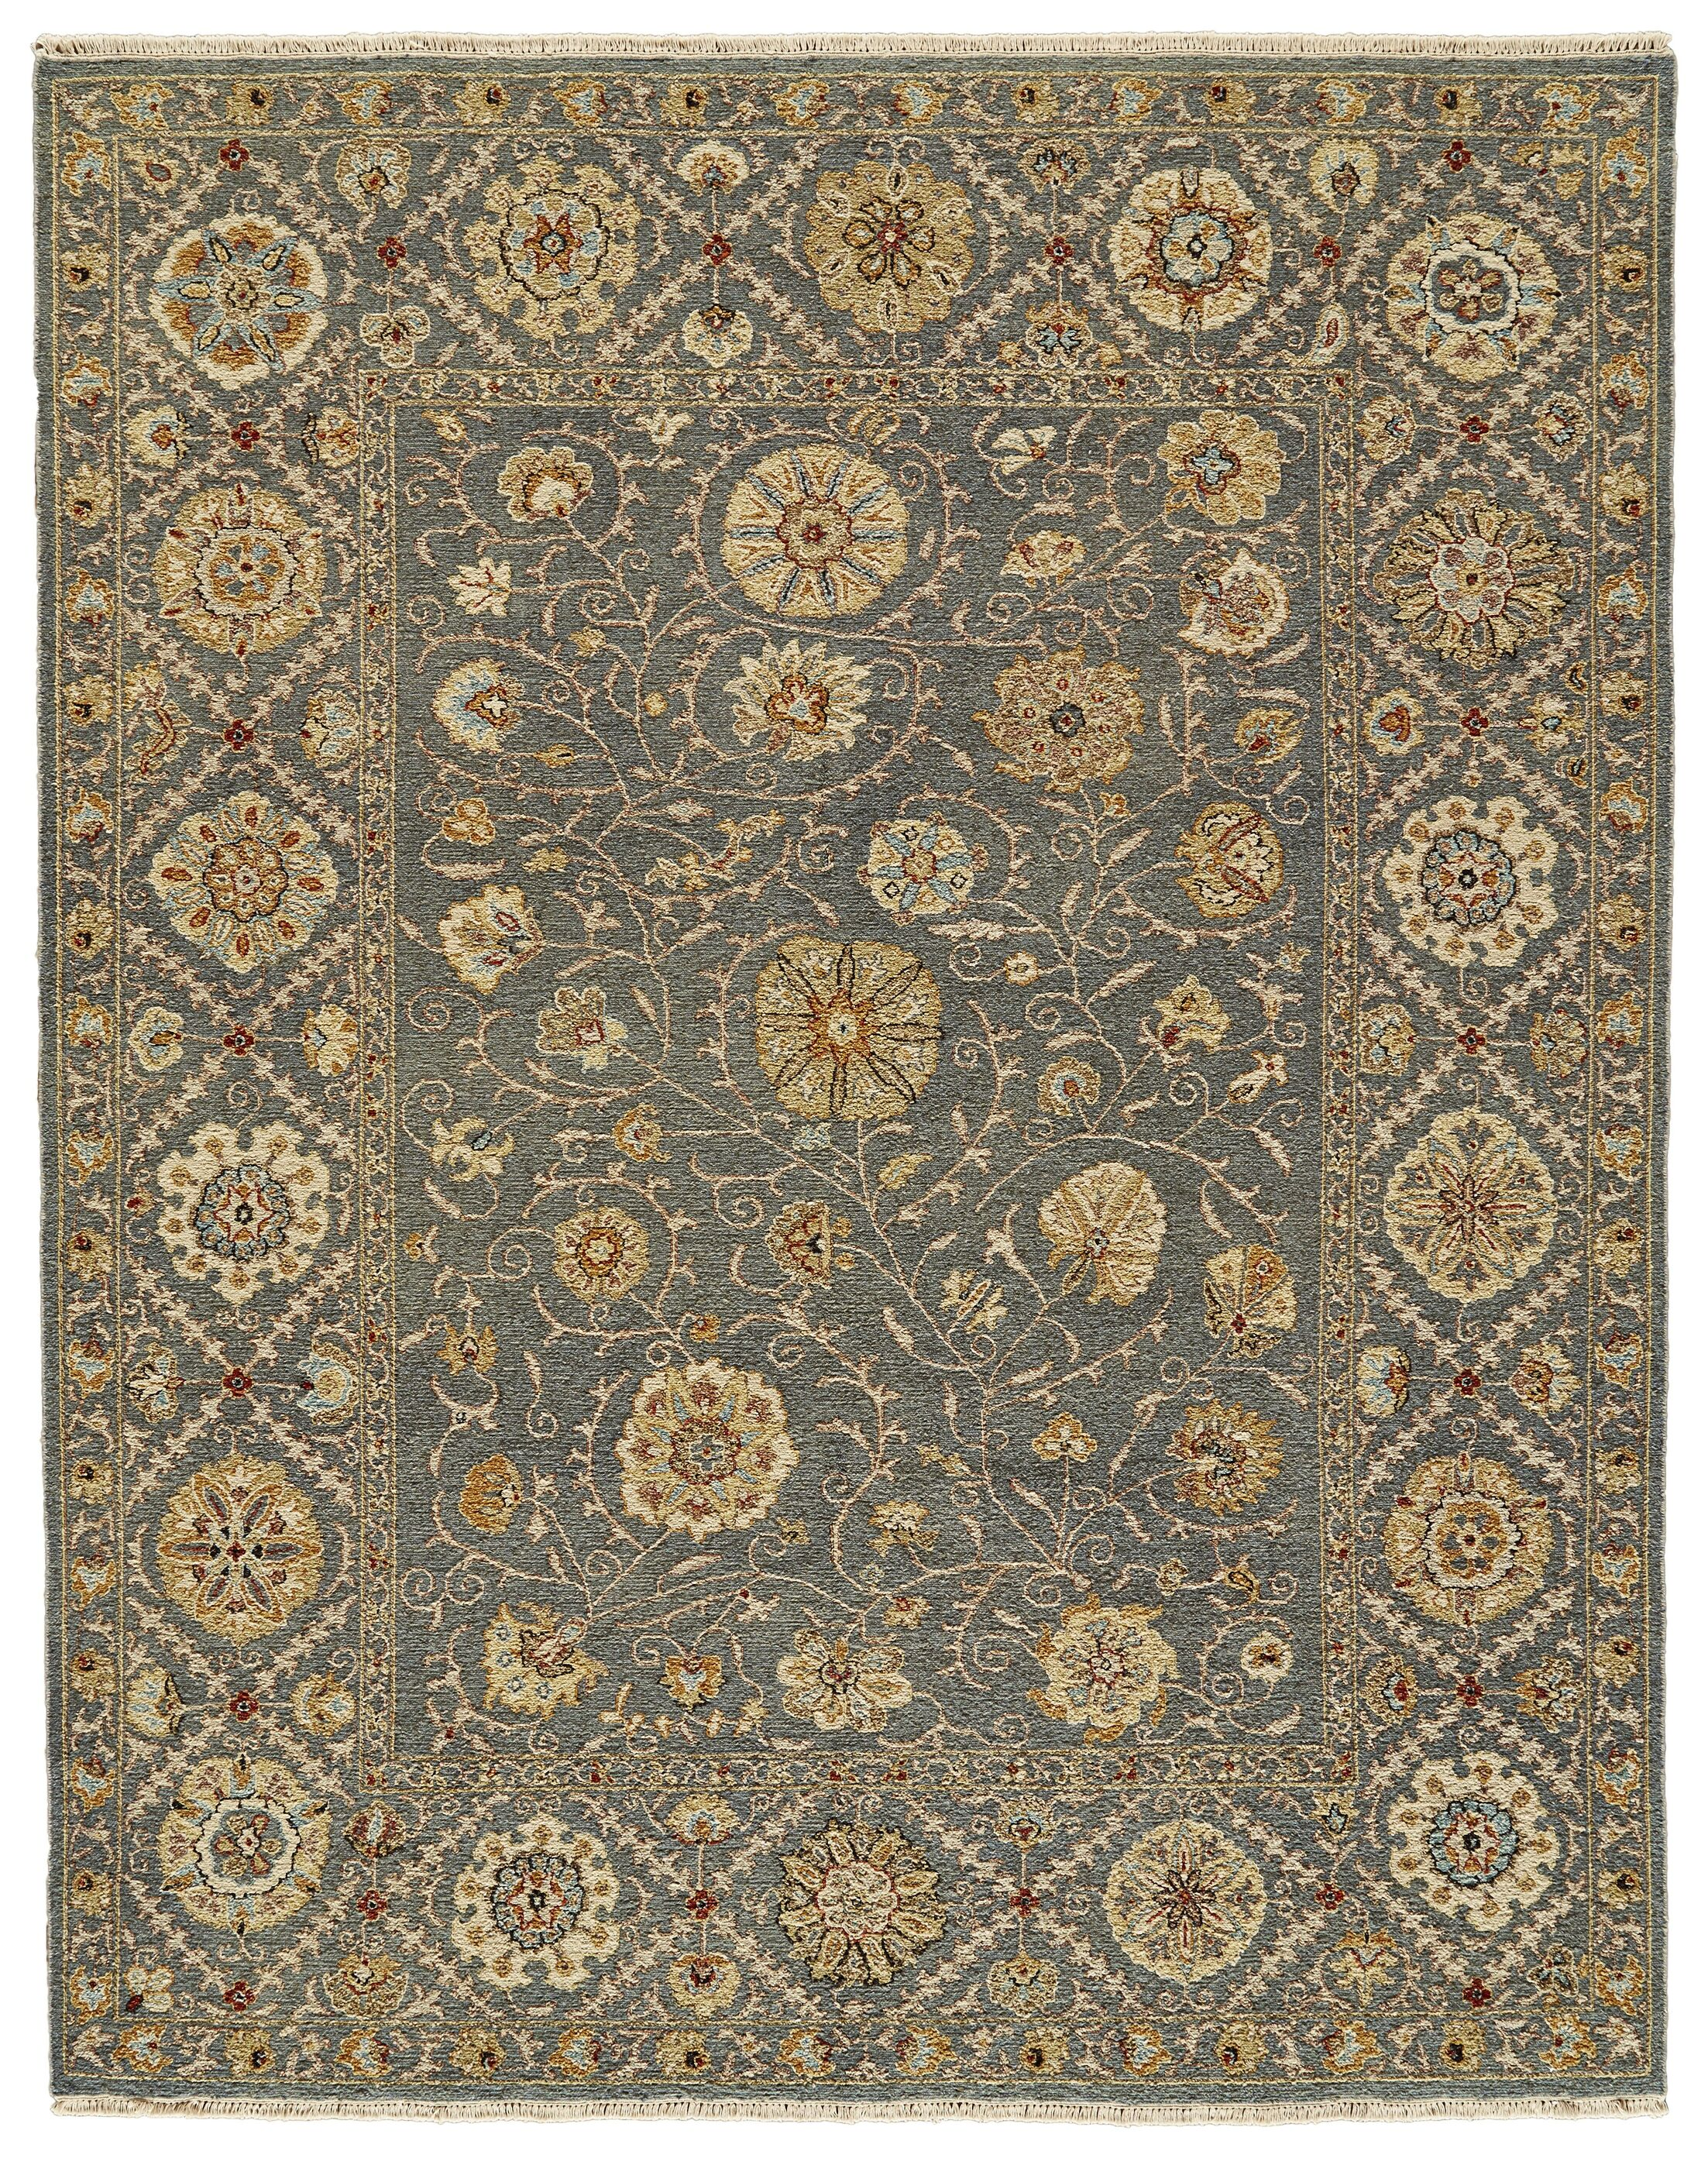 Kondo Hand-Knotted Wool Blue Area Rug Rug Size: Rectangle 5'6